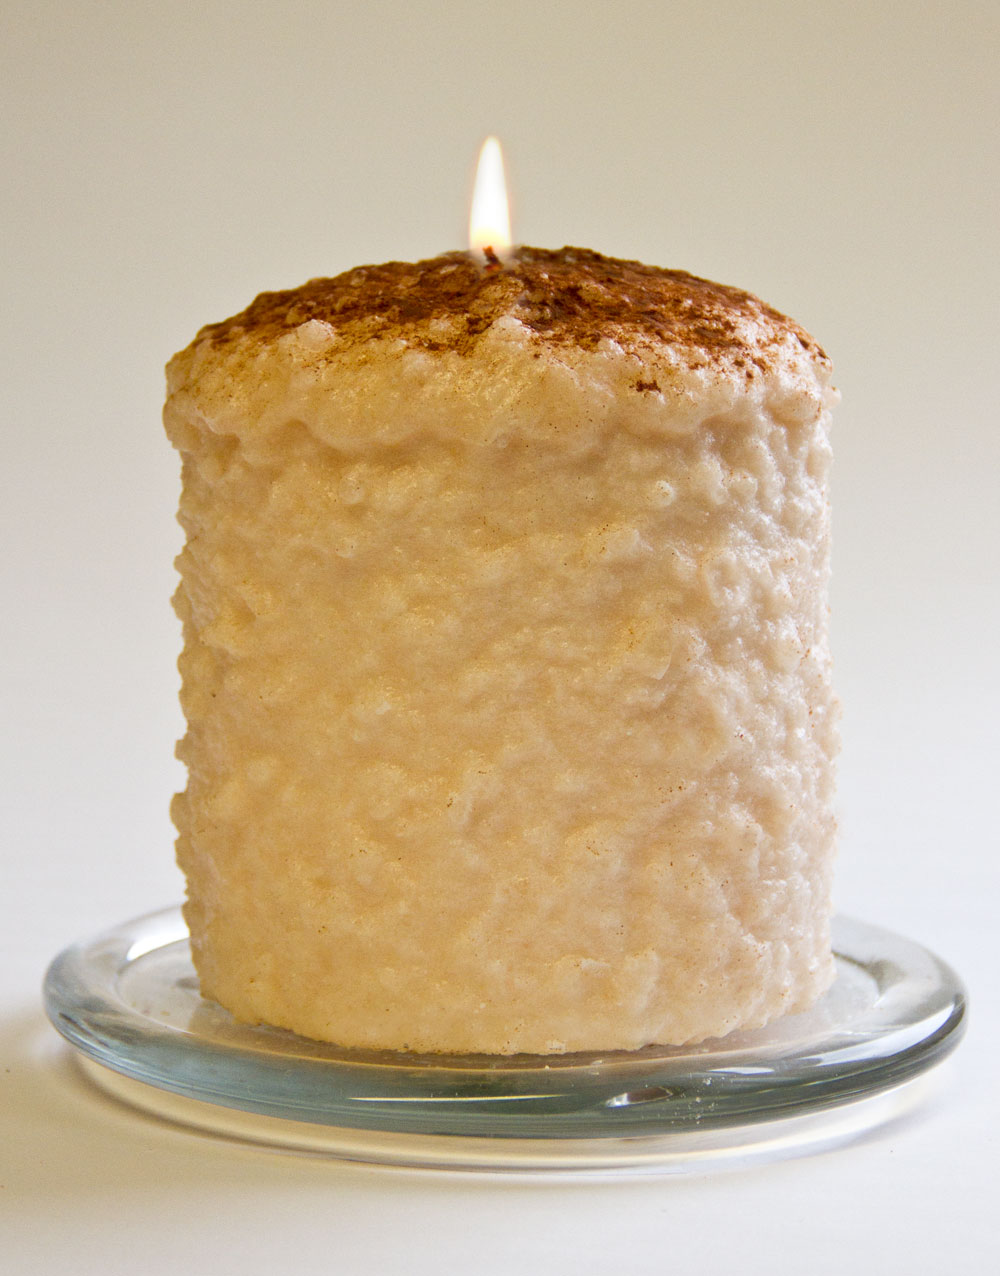 Cake Candle - Warm Glow - Vanilla Custard - 5in x 4.5in